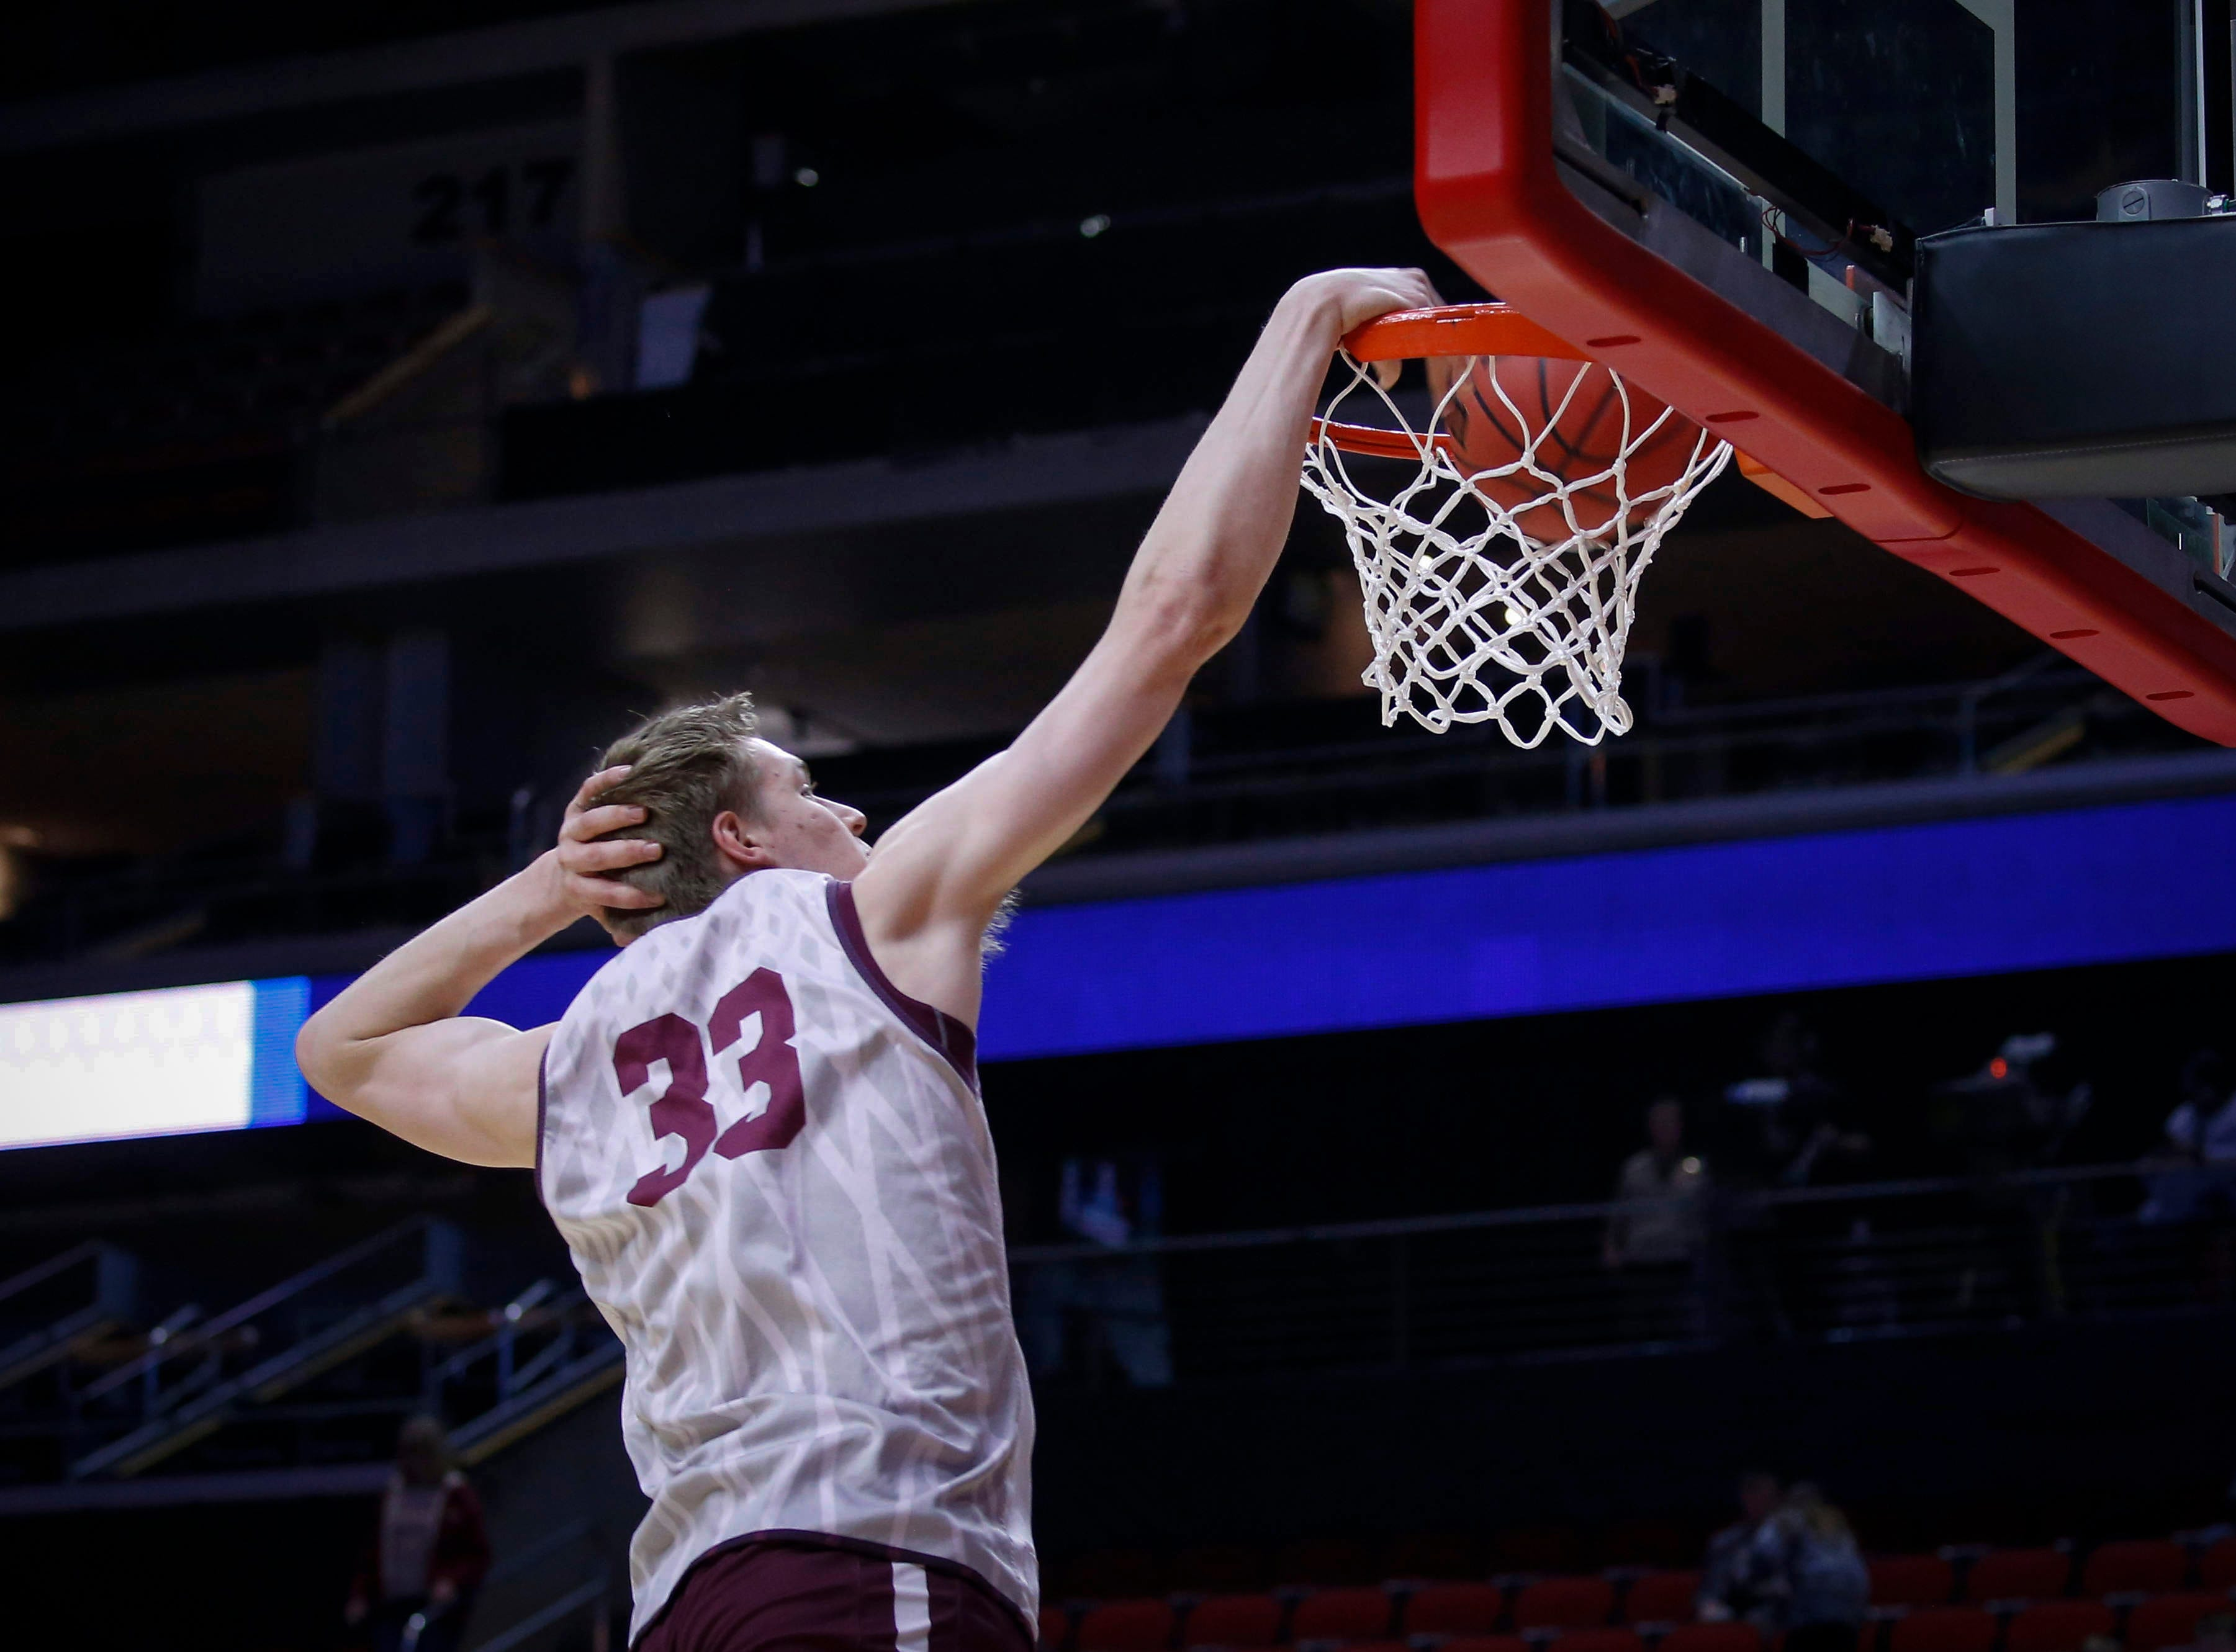 Montana freshman Kelby Kramer dabs as he dunks the ball during open practice on Wednesday, March 20, 2019, at Wells Fargo Arena in Des Moines, Iowa.